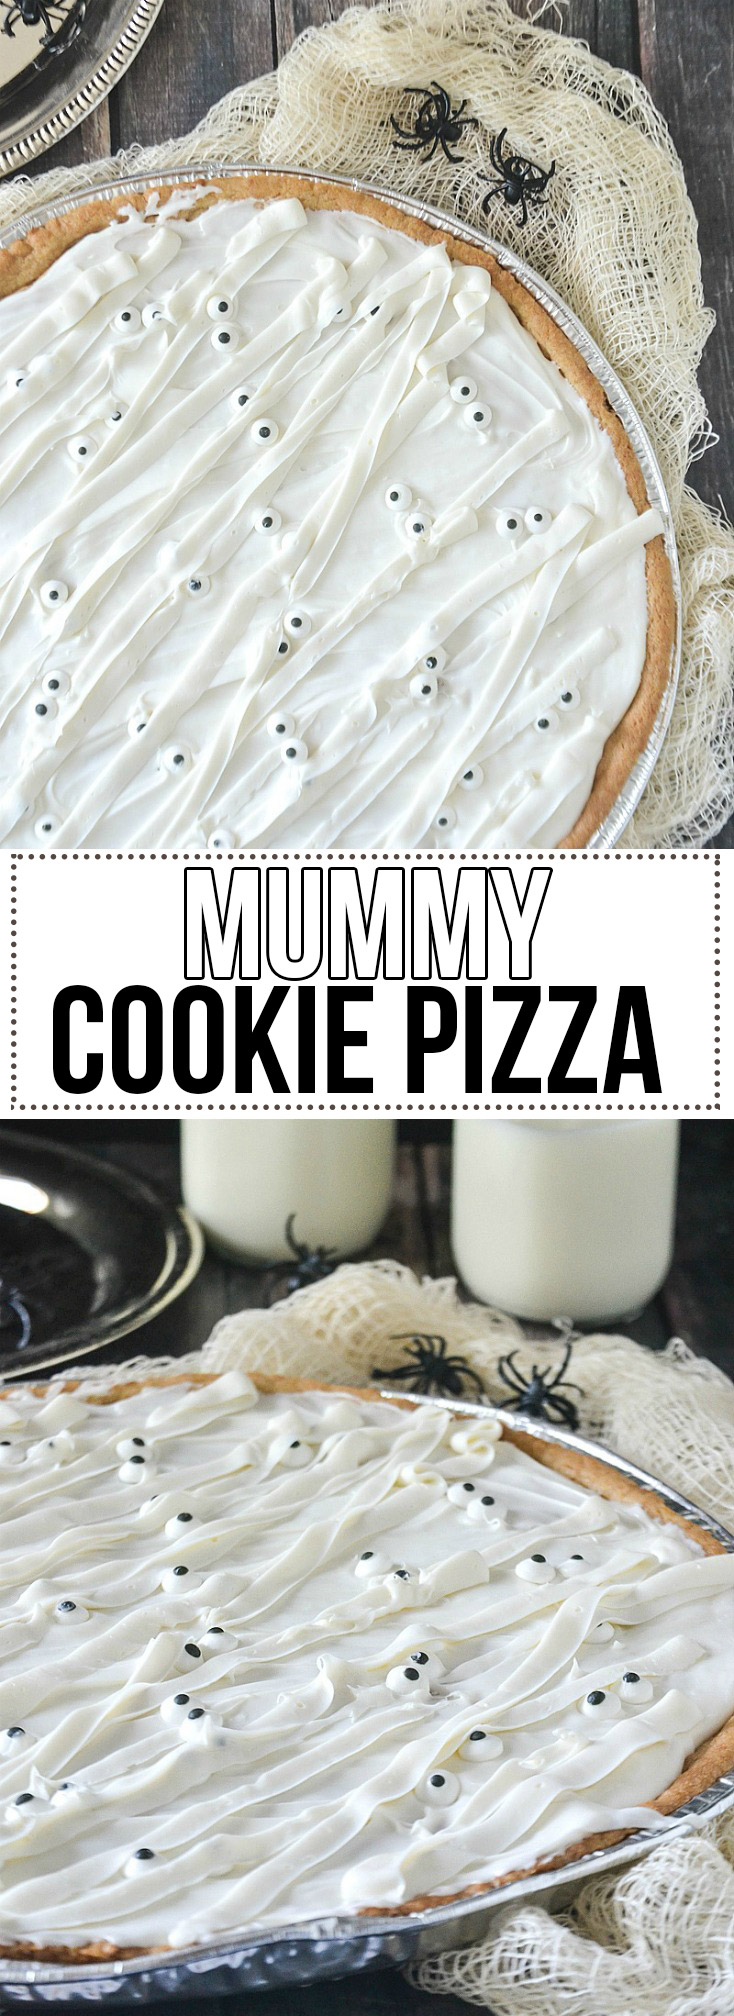 Mummy Cookie Pizza - www.motherthyme.com